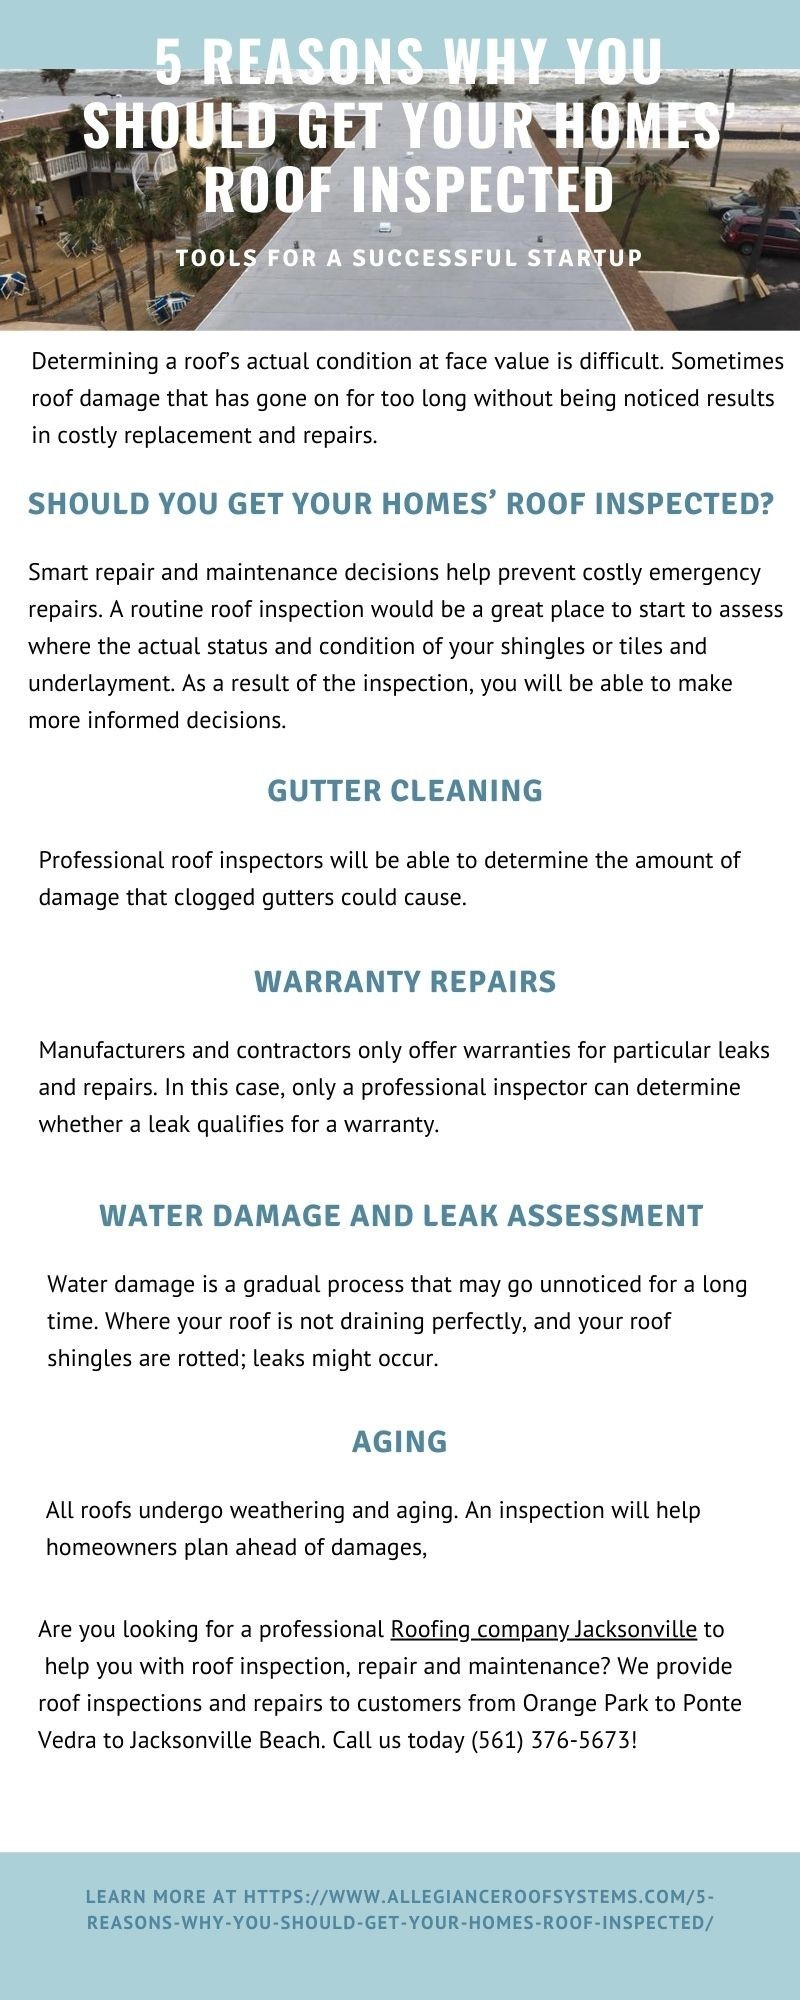 5 Reasons Why You Should Get Your Homes' Roof Inspected